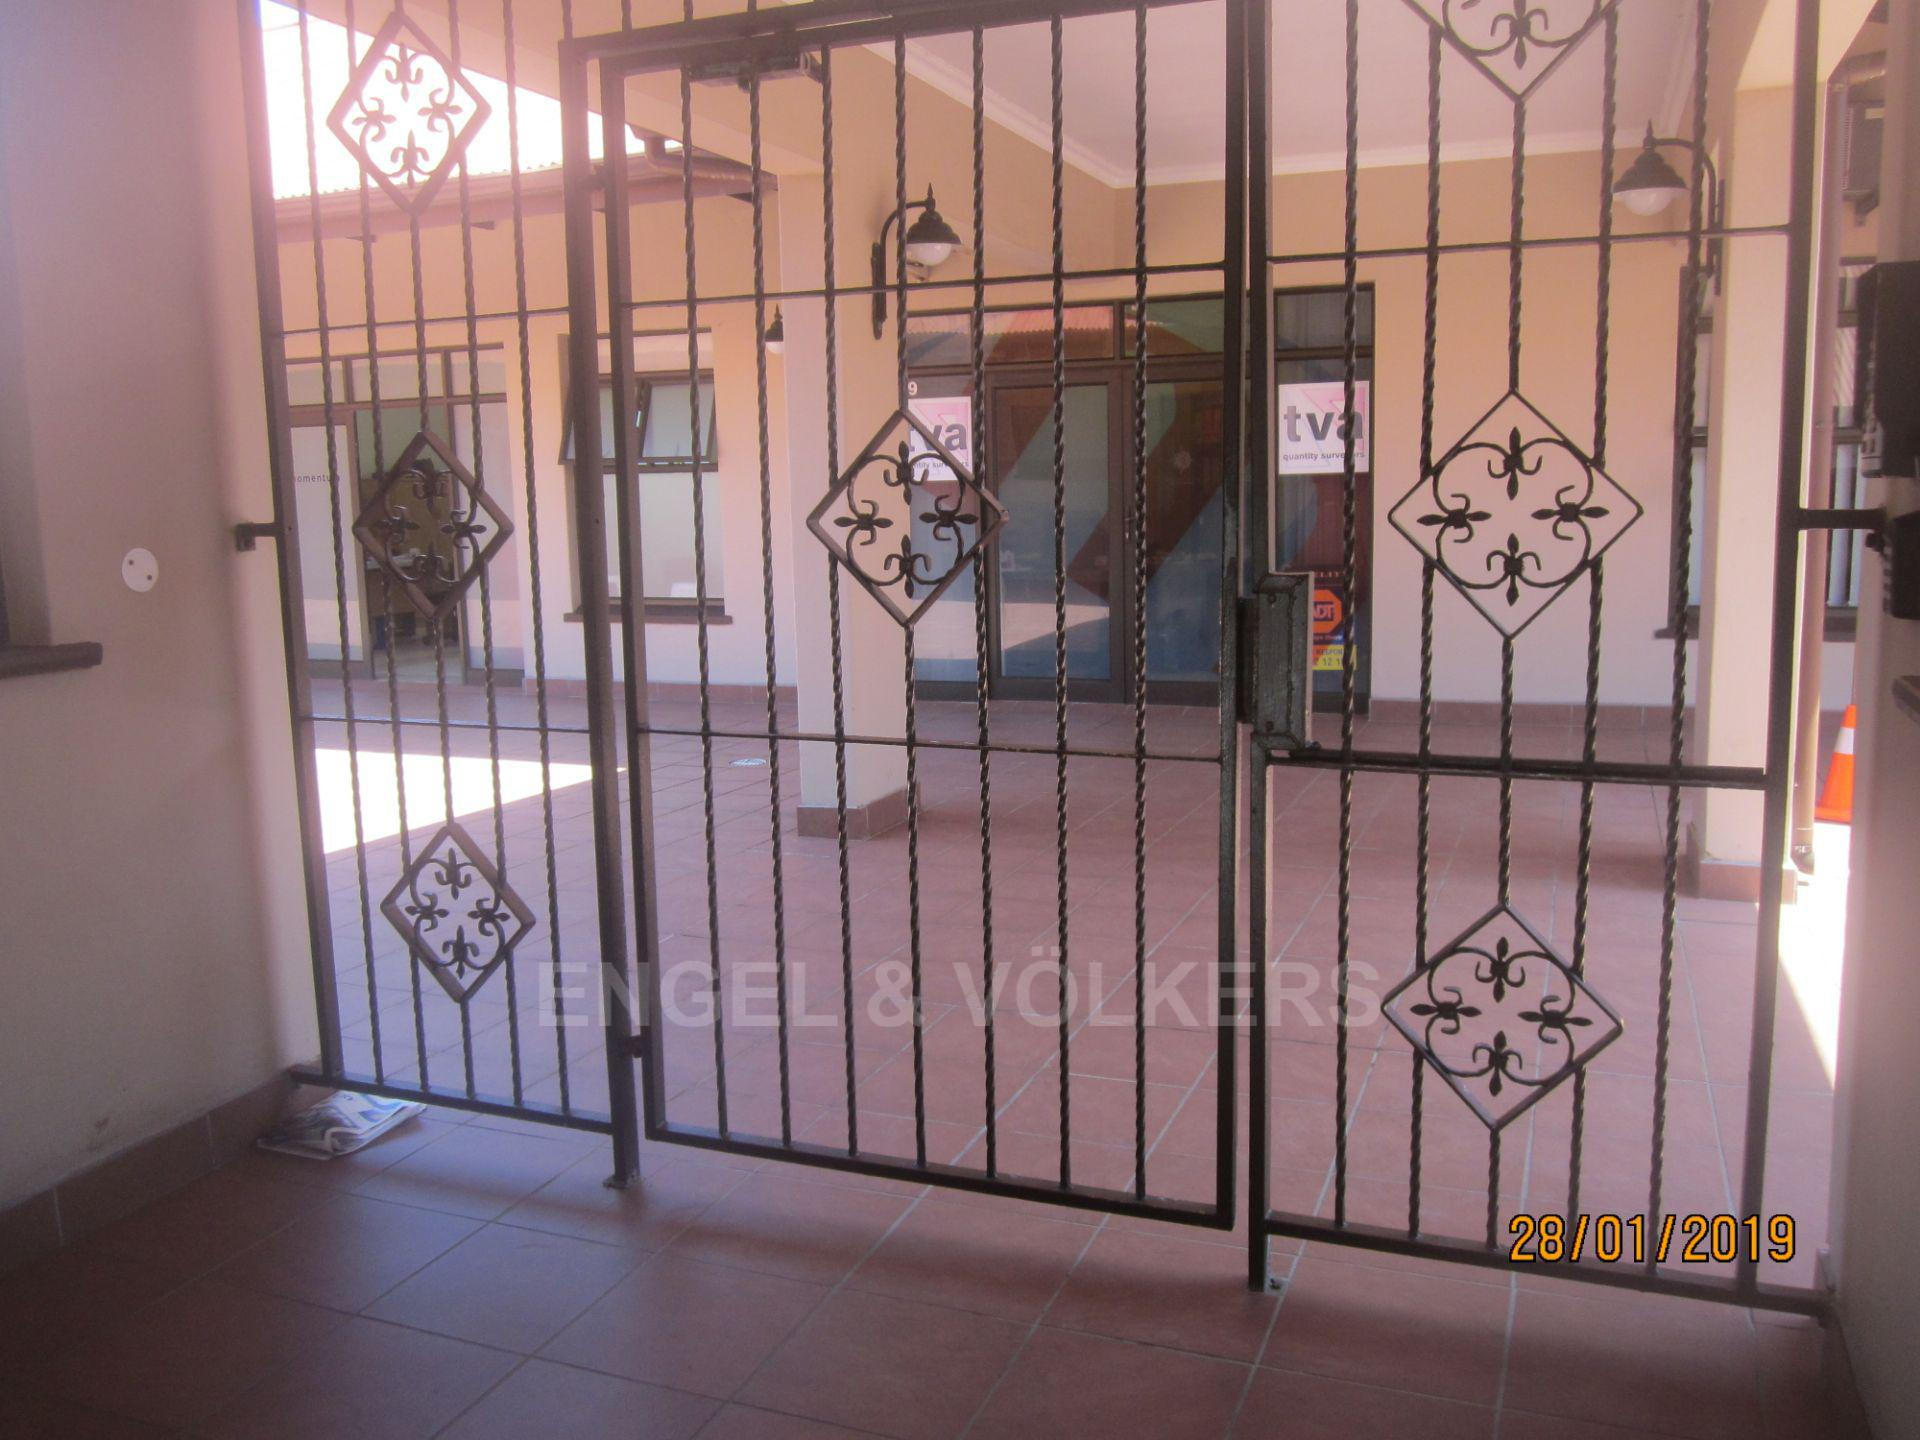 Investment / Residential investment in Shelly Beach - 008 Security gate to offices.JPG